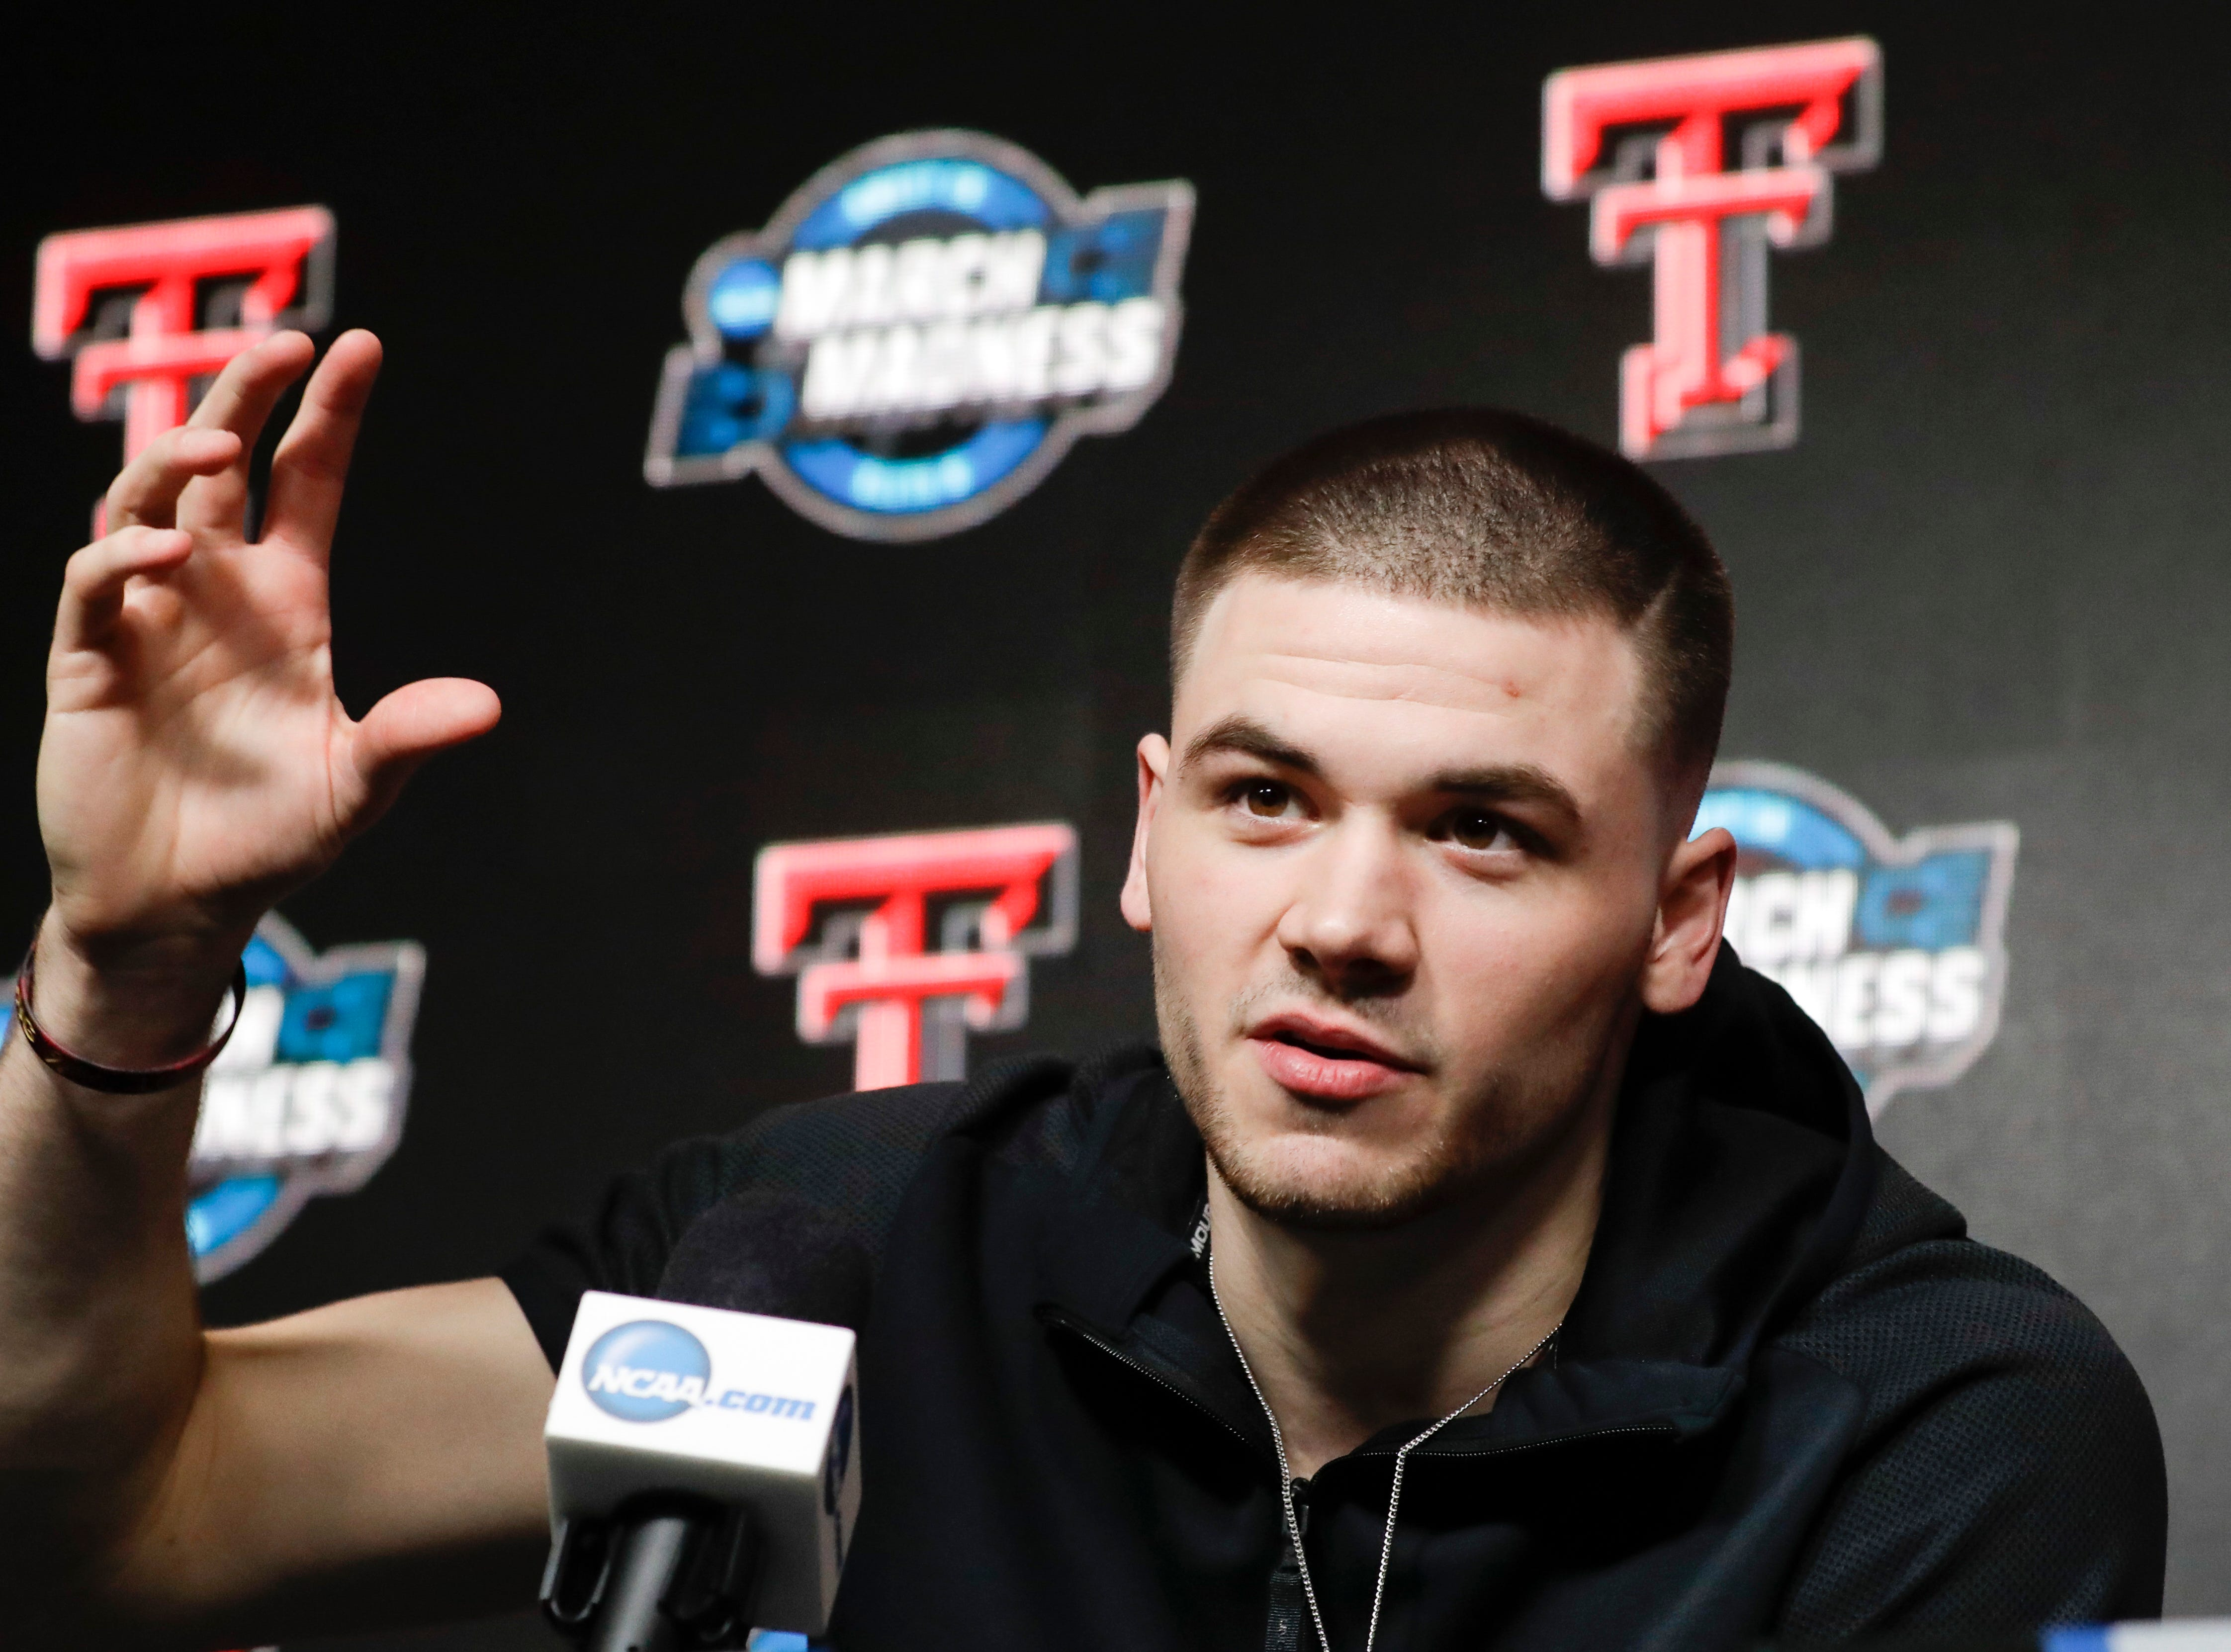 Texas Tech guard Matt Mooney speaks during a news conference at the NCAA men's college basketball tournament in Anaheim, Calif., Wednesday, March 27, 2019. Texas Tech plays Michigan in a West Regional semifinal on Thursday.(AP Photo/Chris Carlson)